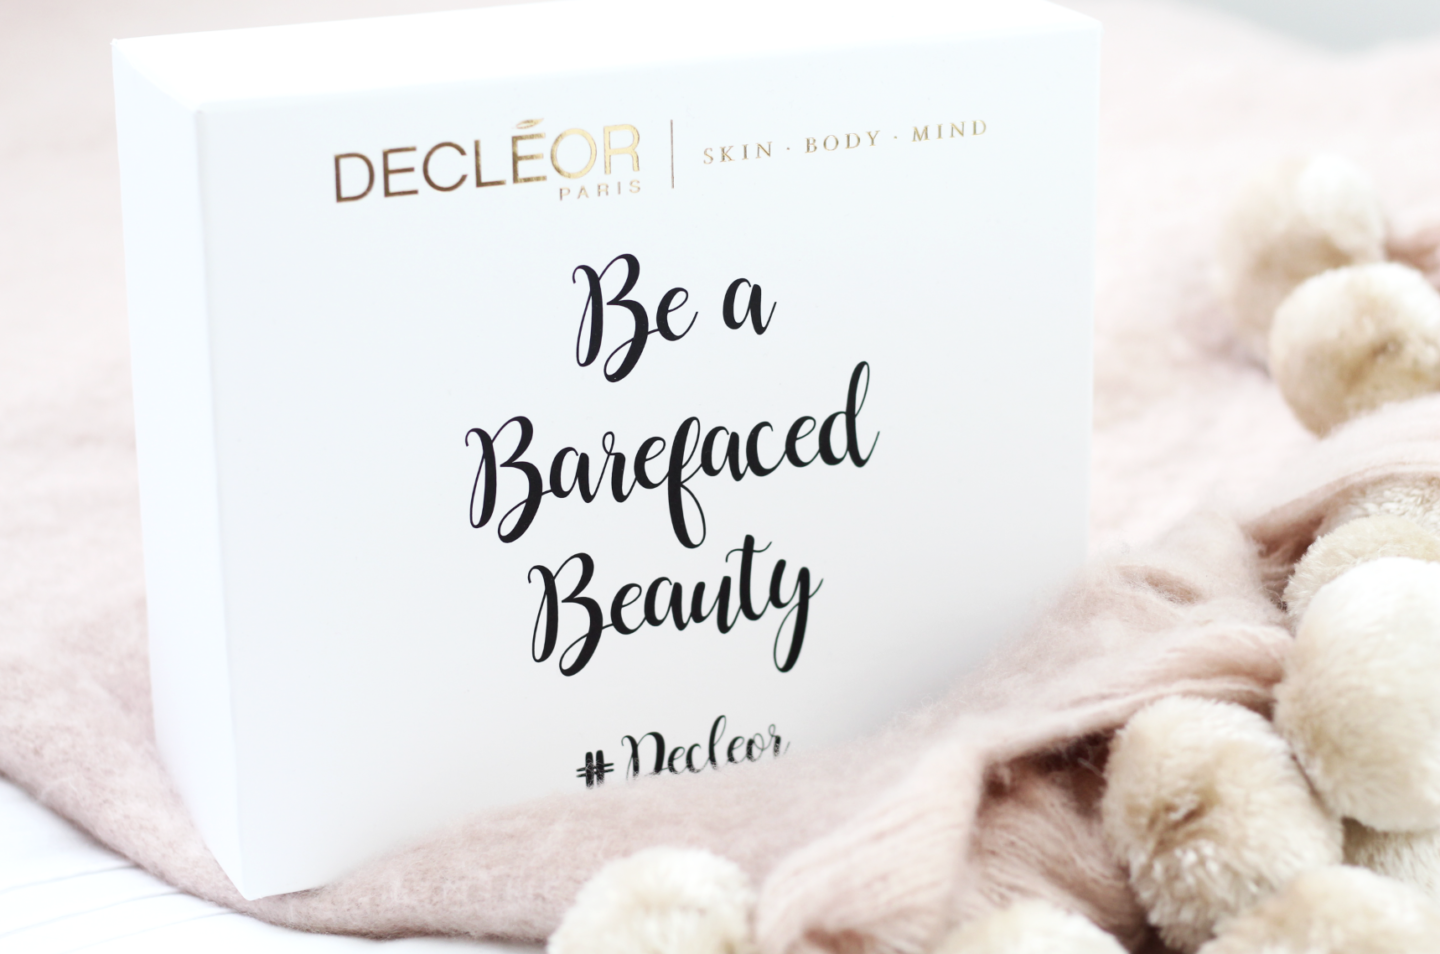 THE IMPORTANCE OF BAREFACED BEAUTY